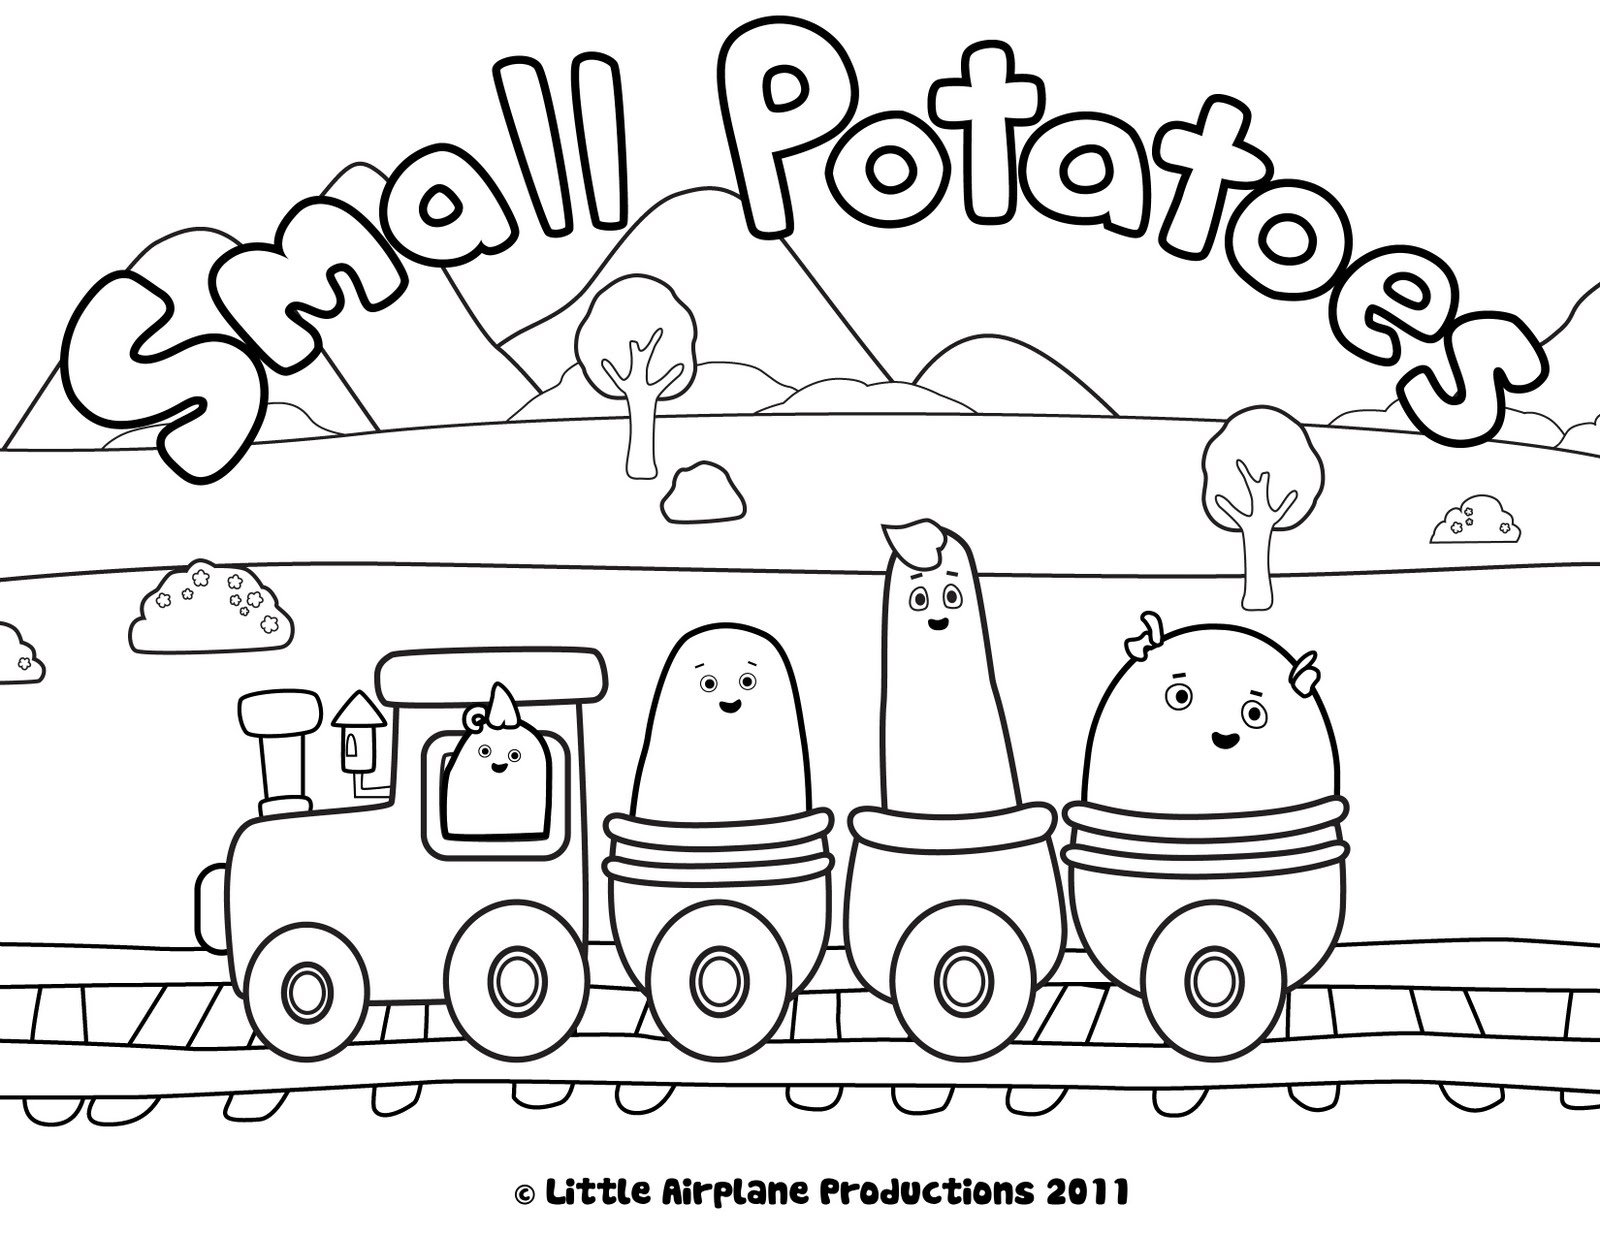 small potatoes coloring pages - Small Coloring Pages